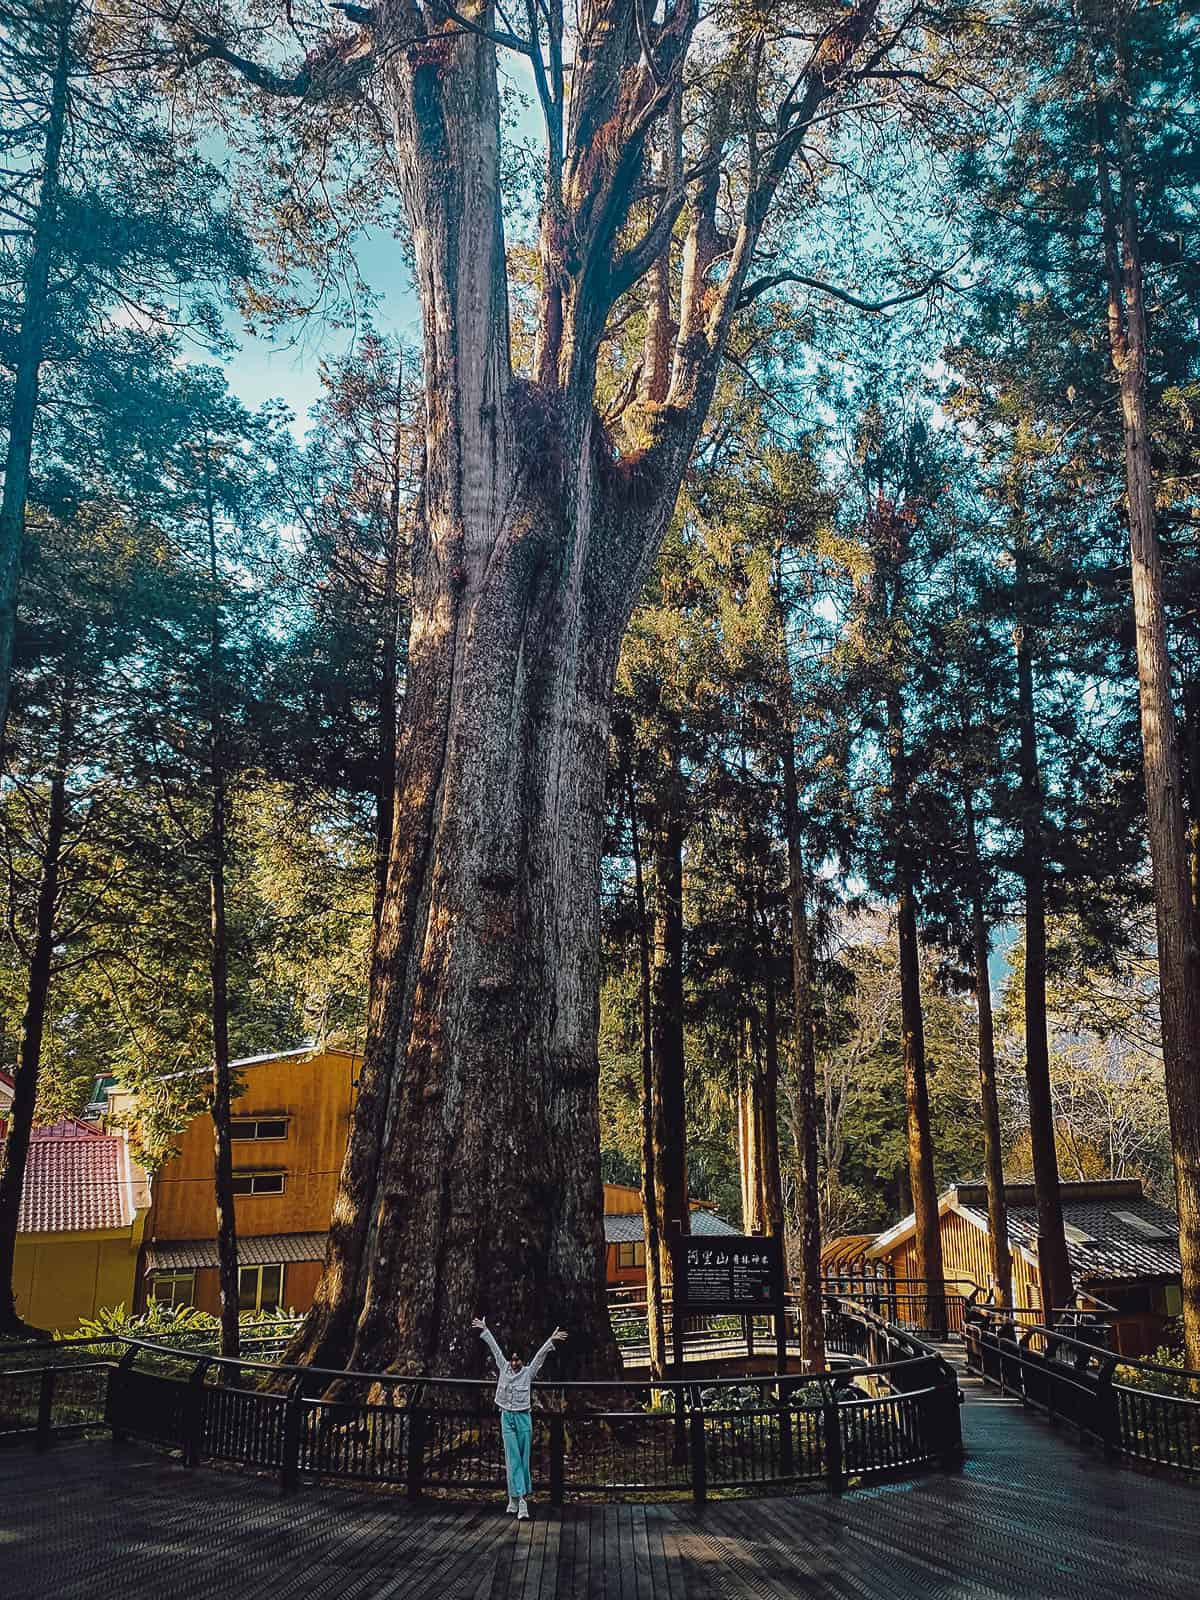 Xianglin Sacred Tree at Alishan National Scenic Area, Chiayi County, Taiwan